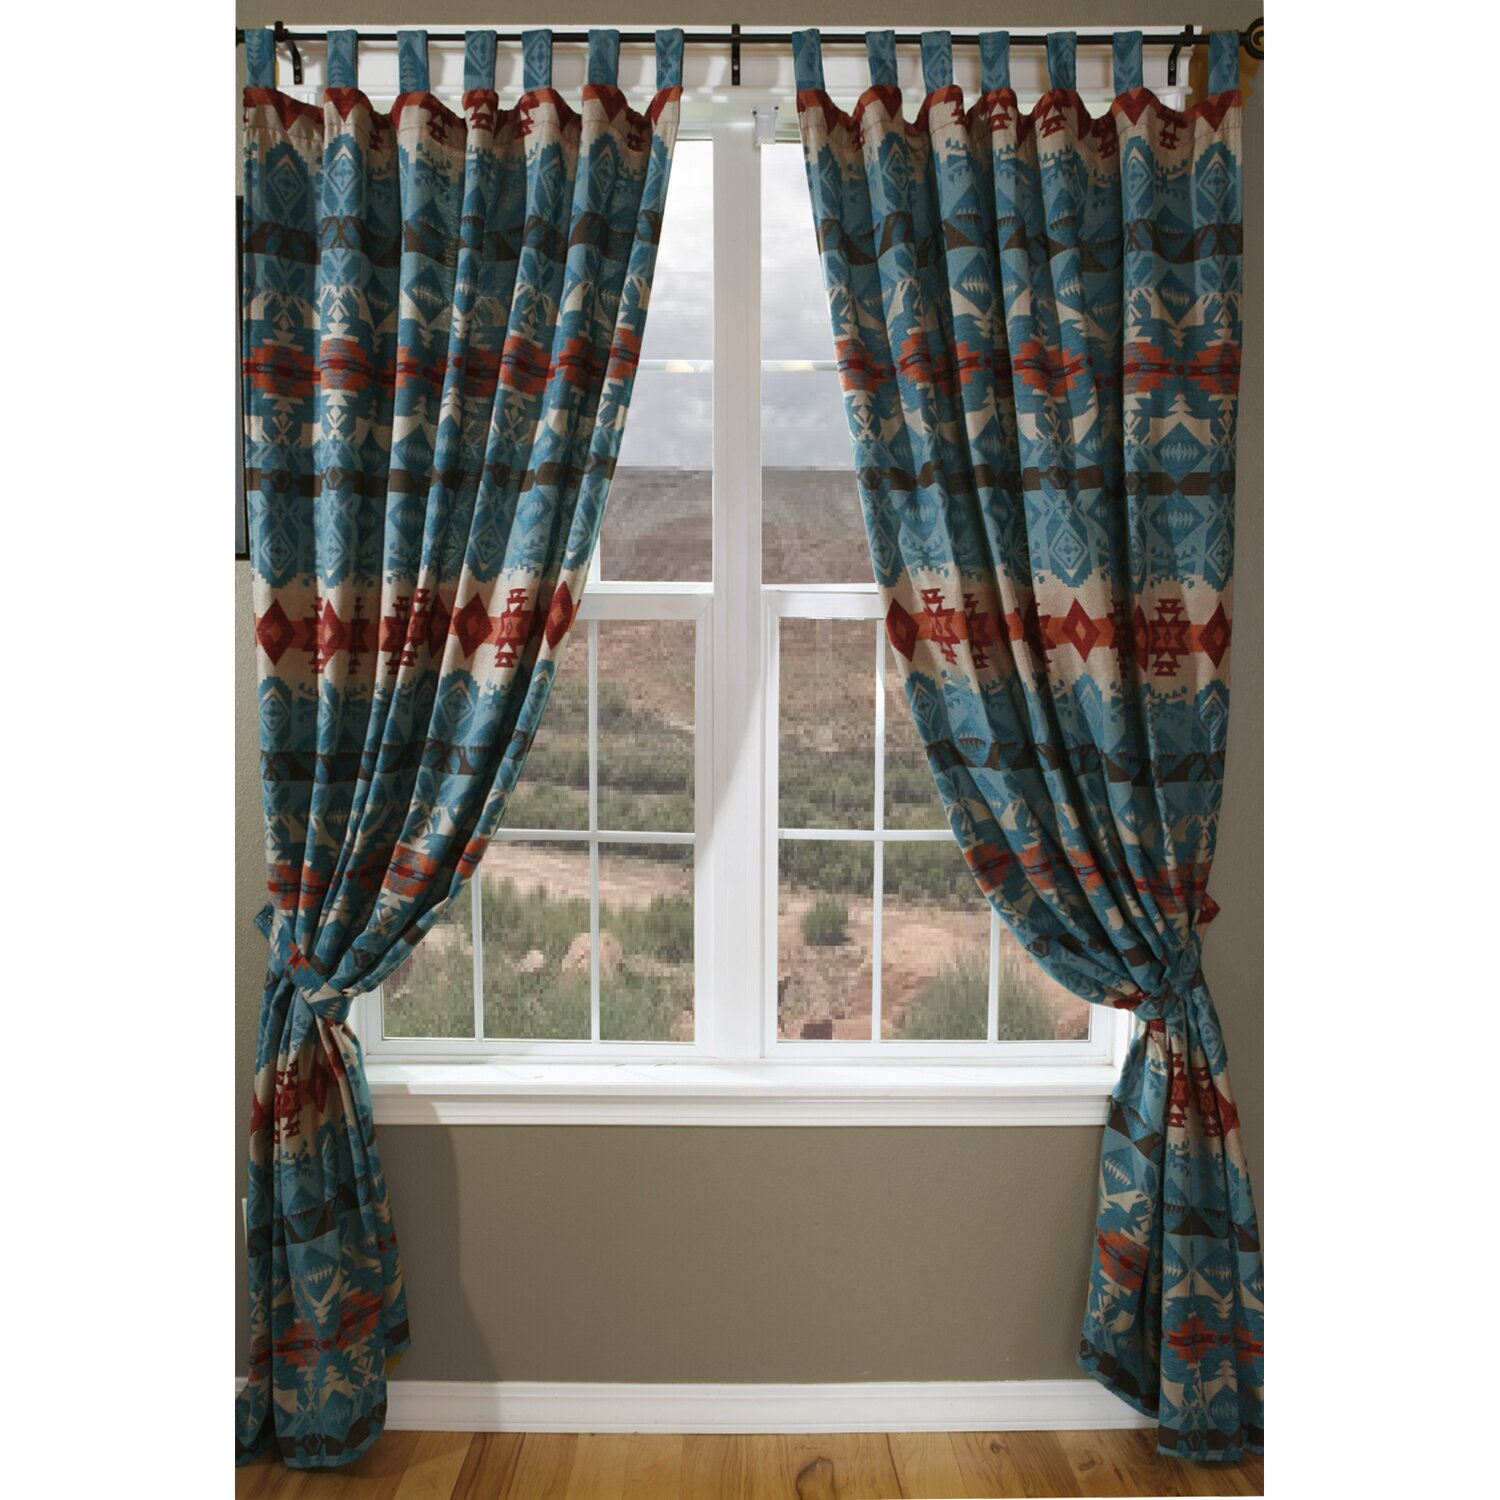 Carstens Inc. Turquoise Chamarro Drape Set & Reviews